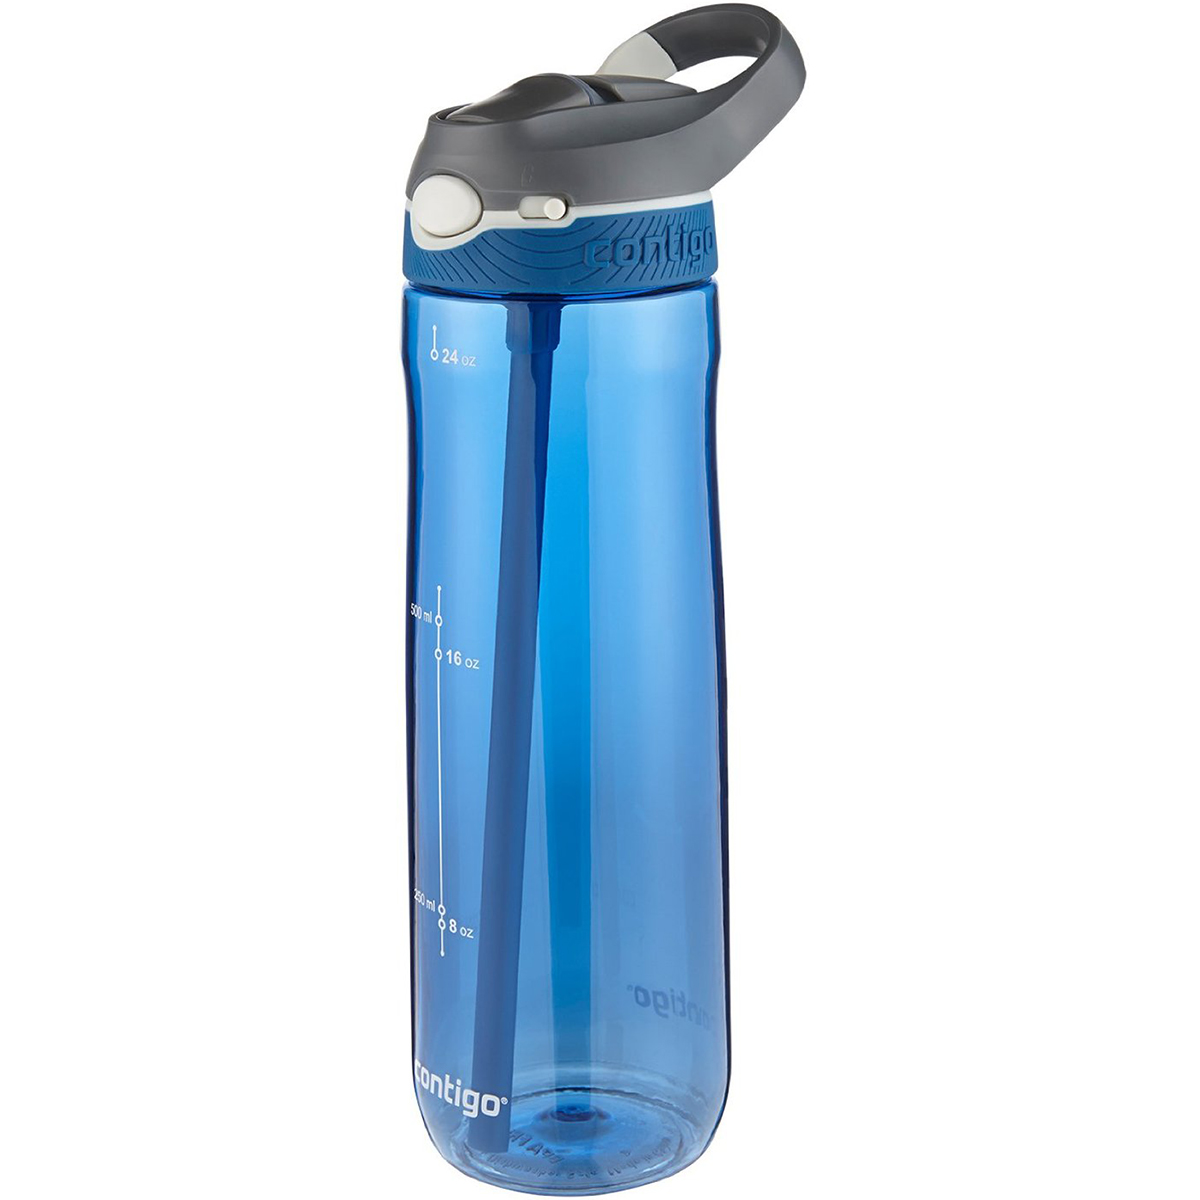 Contigo-24-oz-Ashland-Autospout-Water-Bottle Indexbild 9